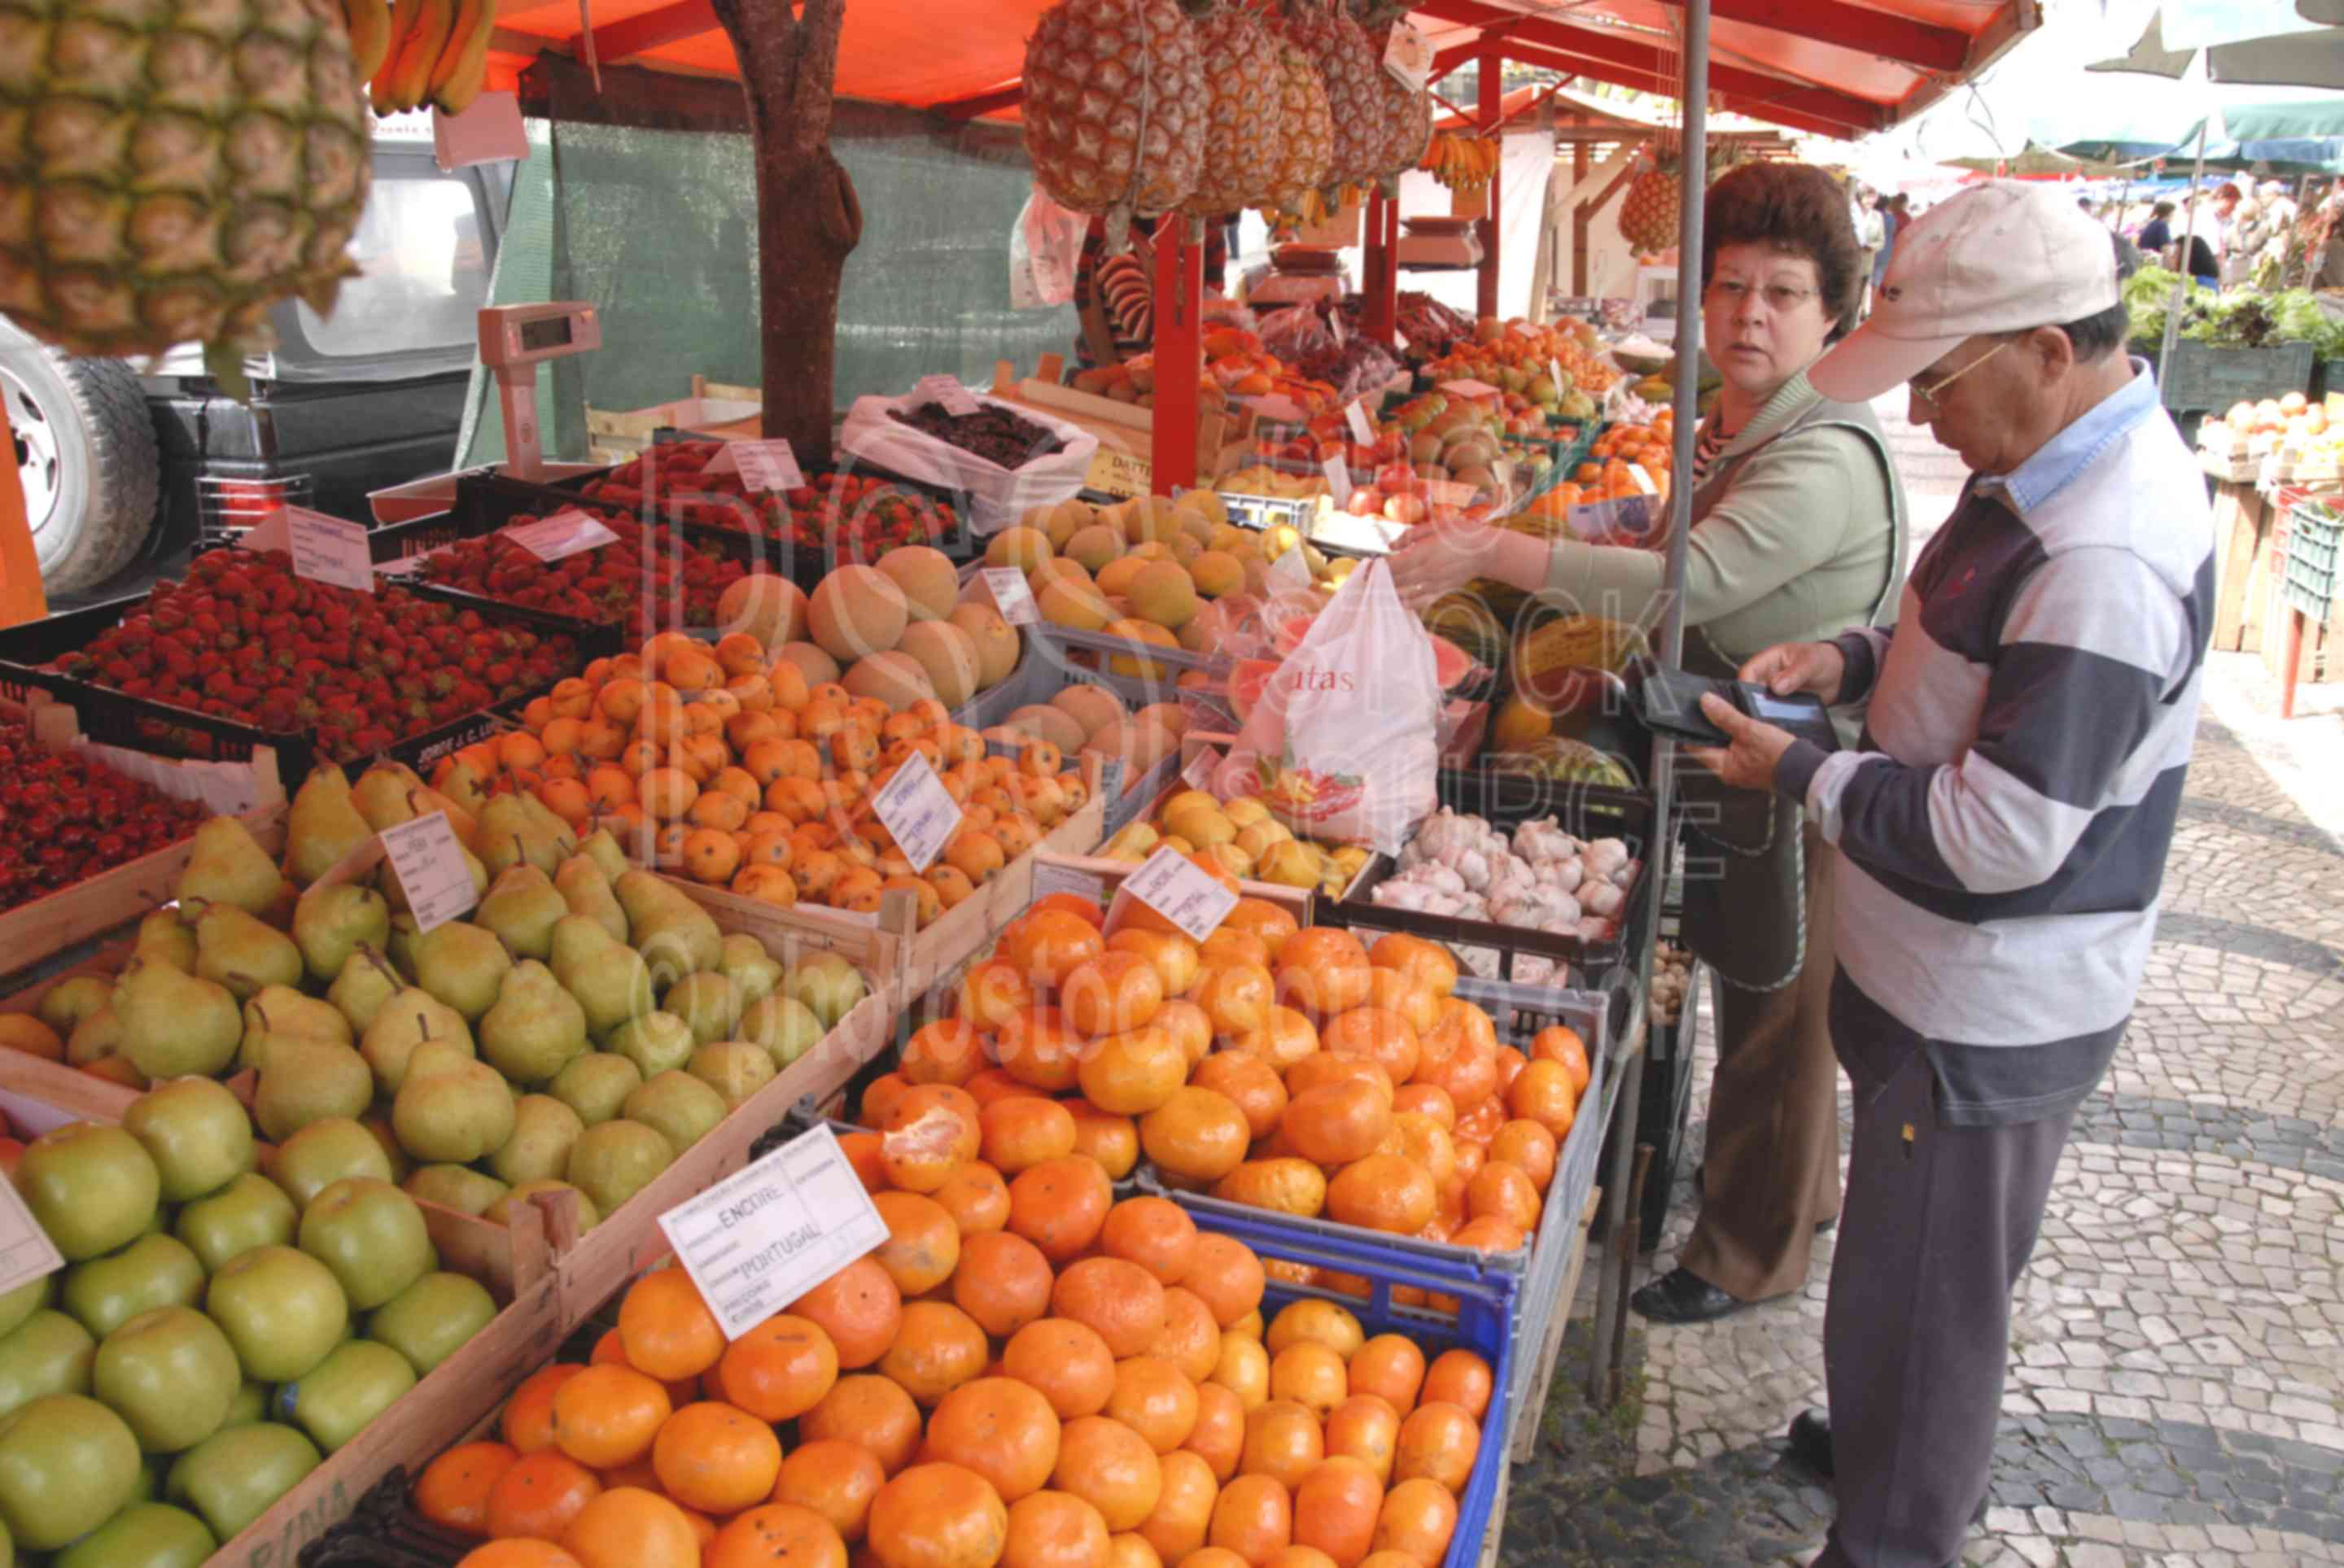 Fruit Seller,food,seller,vendor,fruit,people,mercado das caldas,markets